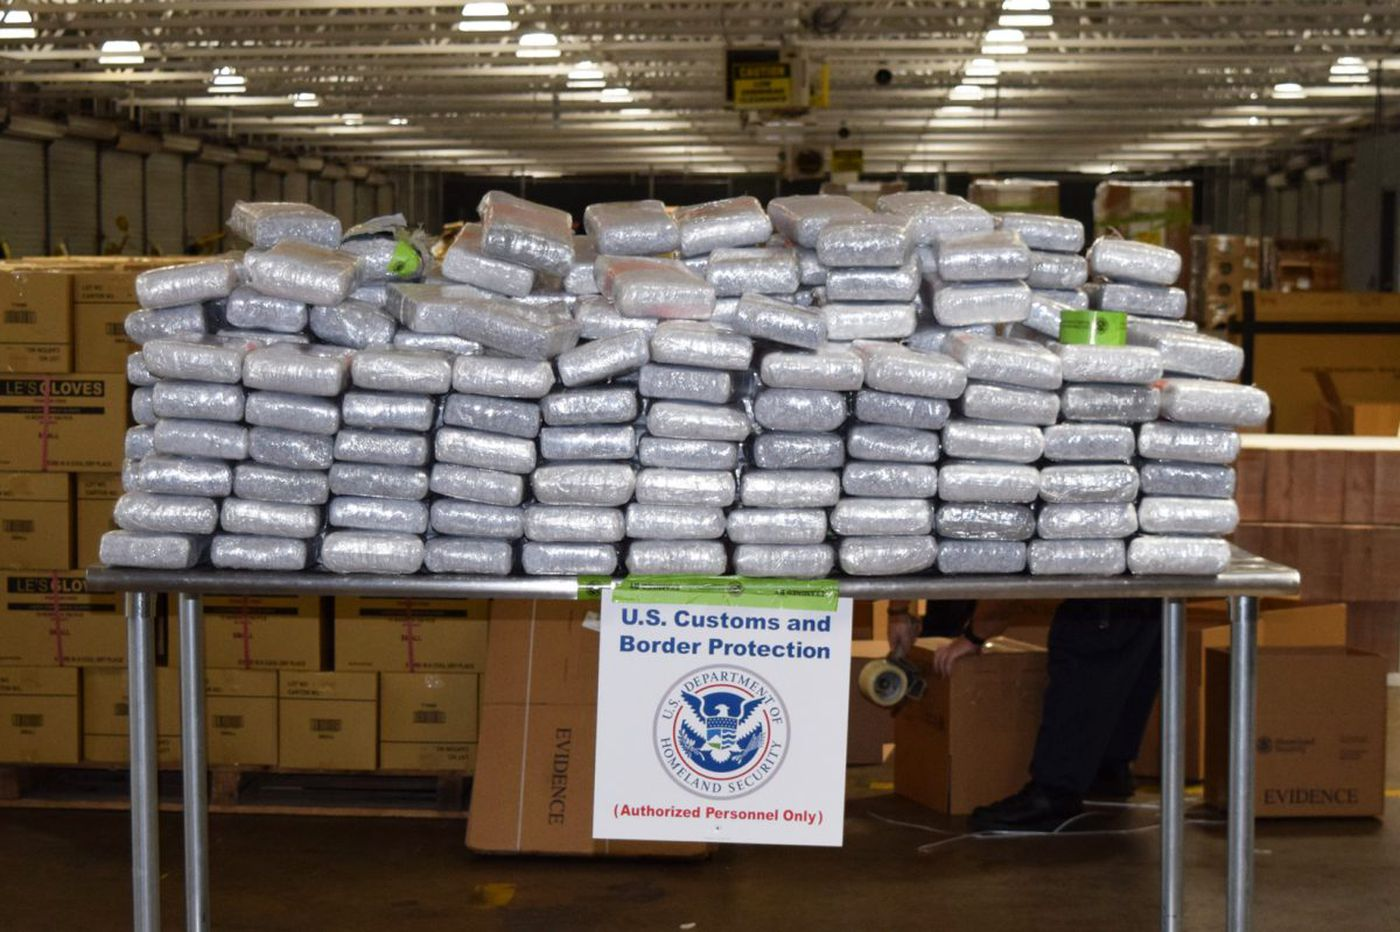 709 pounds of cocaine seized at Port of Philadelphia facility - the